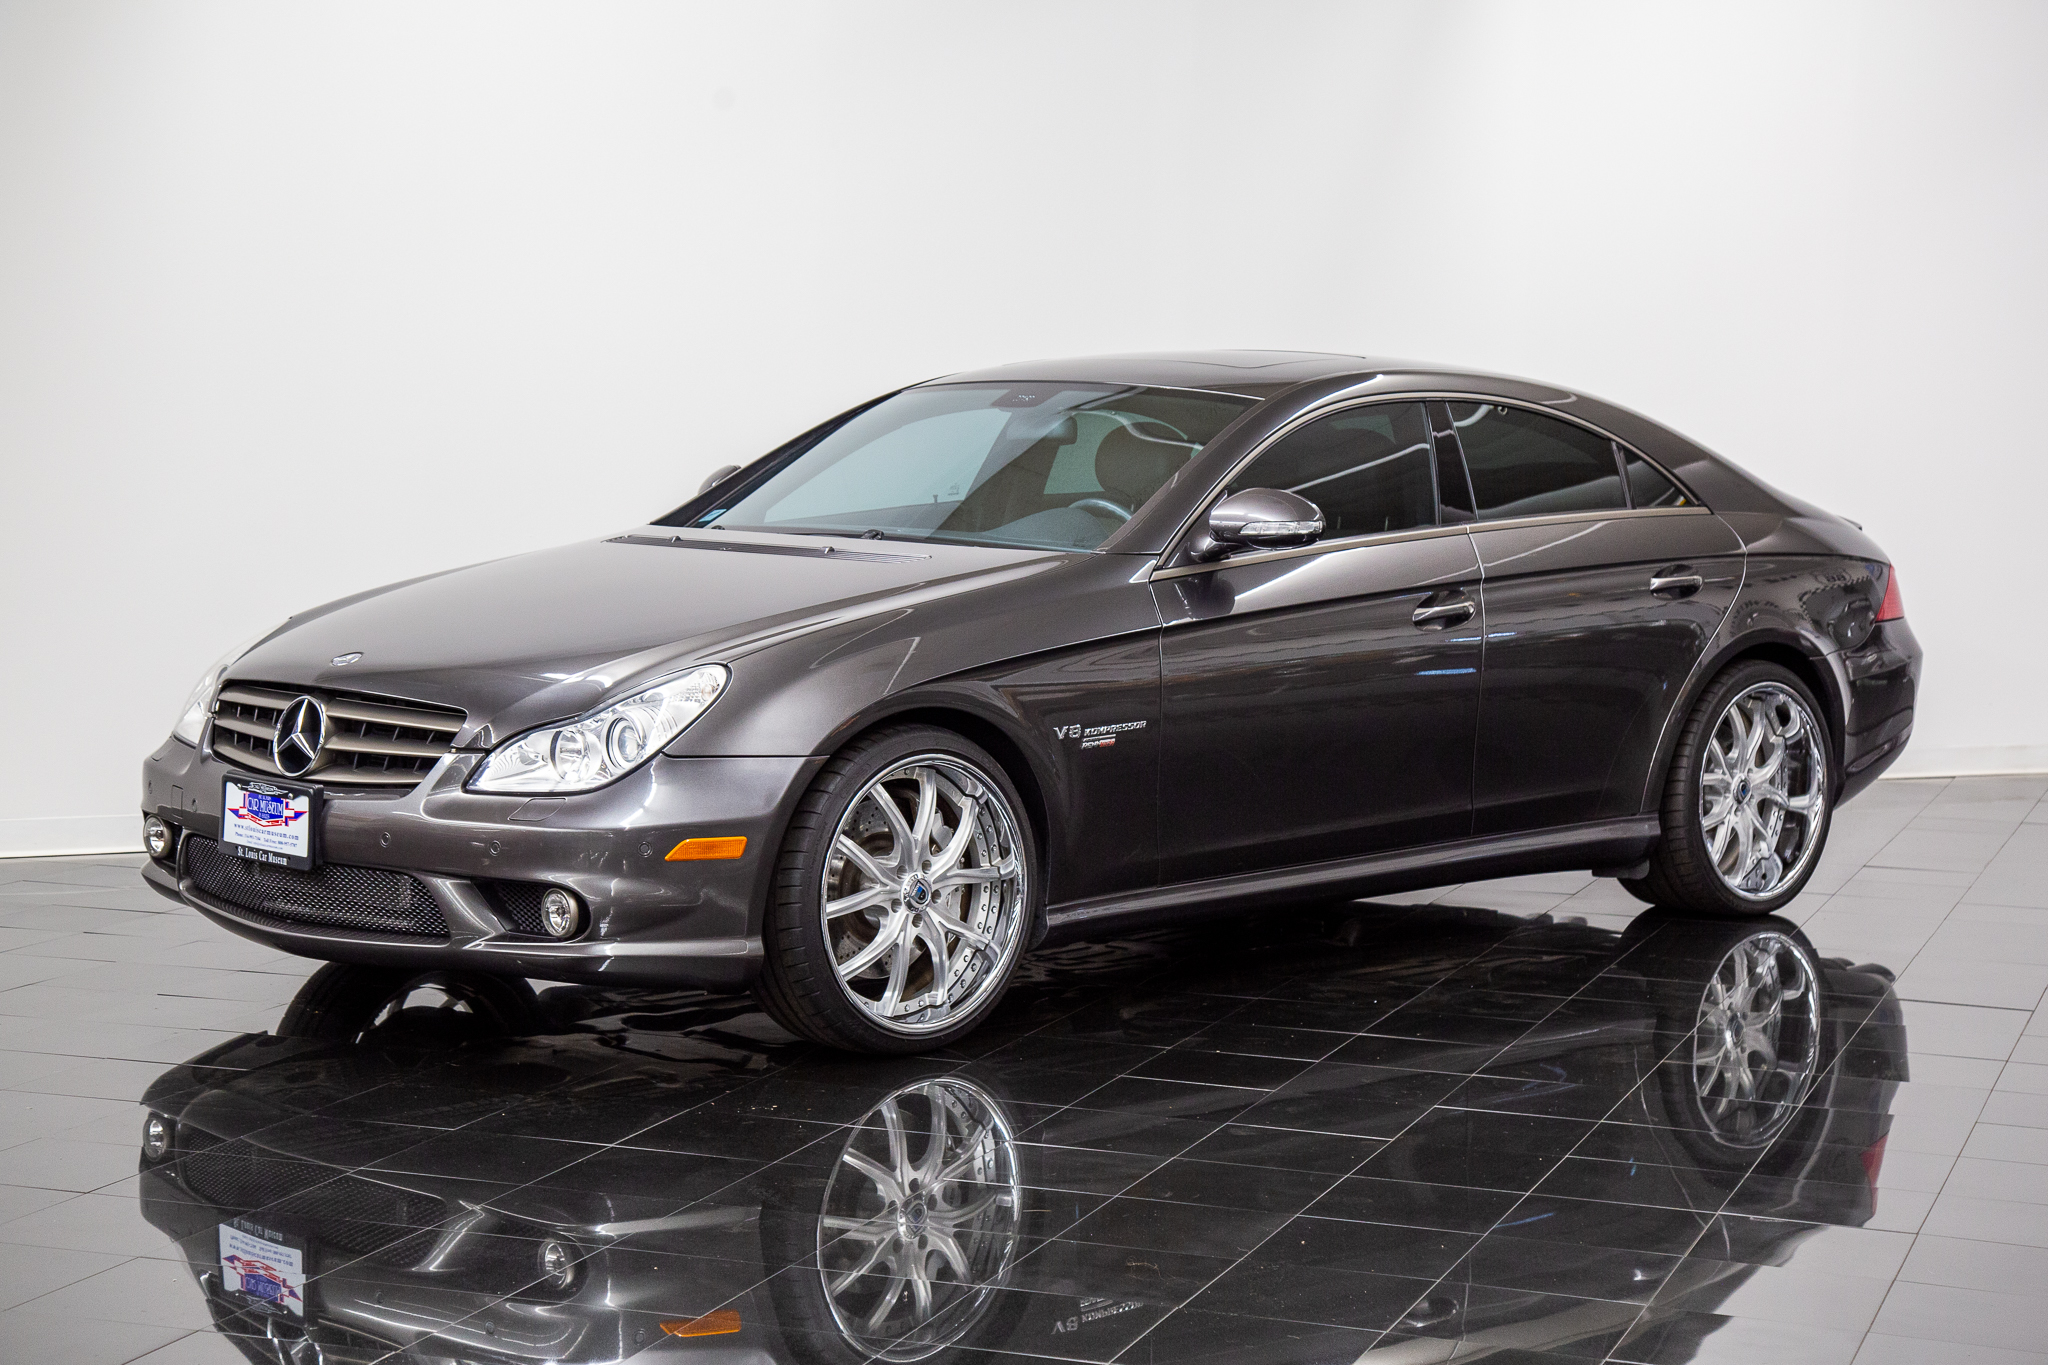 2006 Mercedes Benz CLS Class CLS55 AMG Coupe for sale